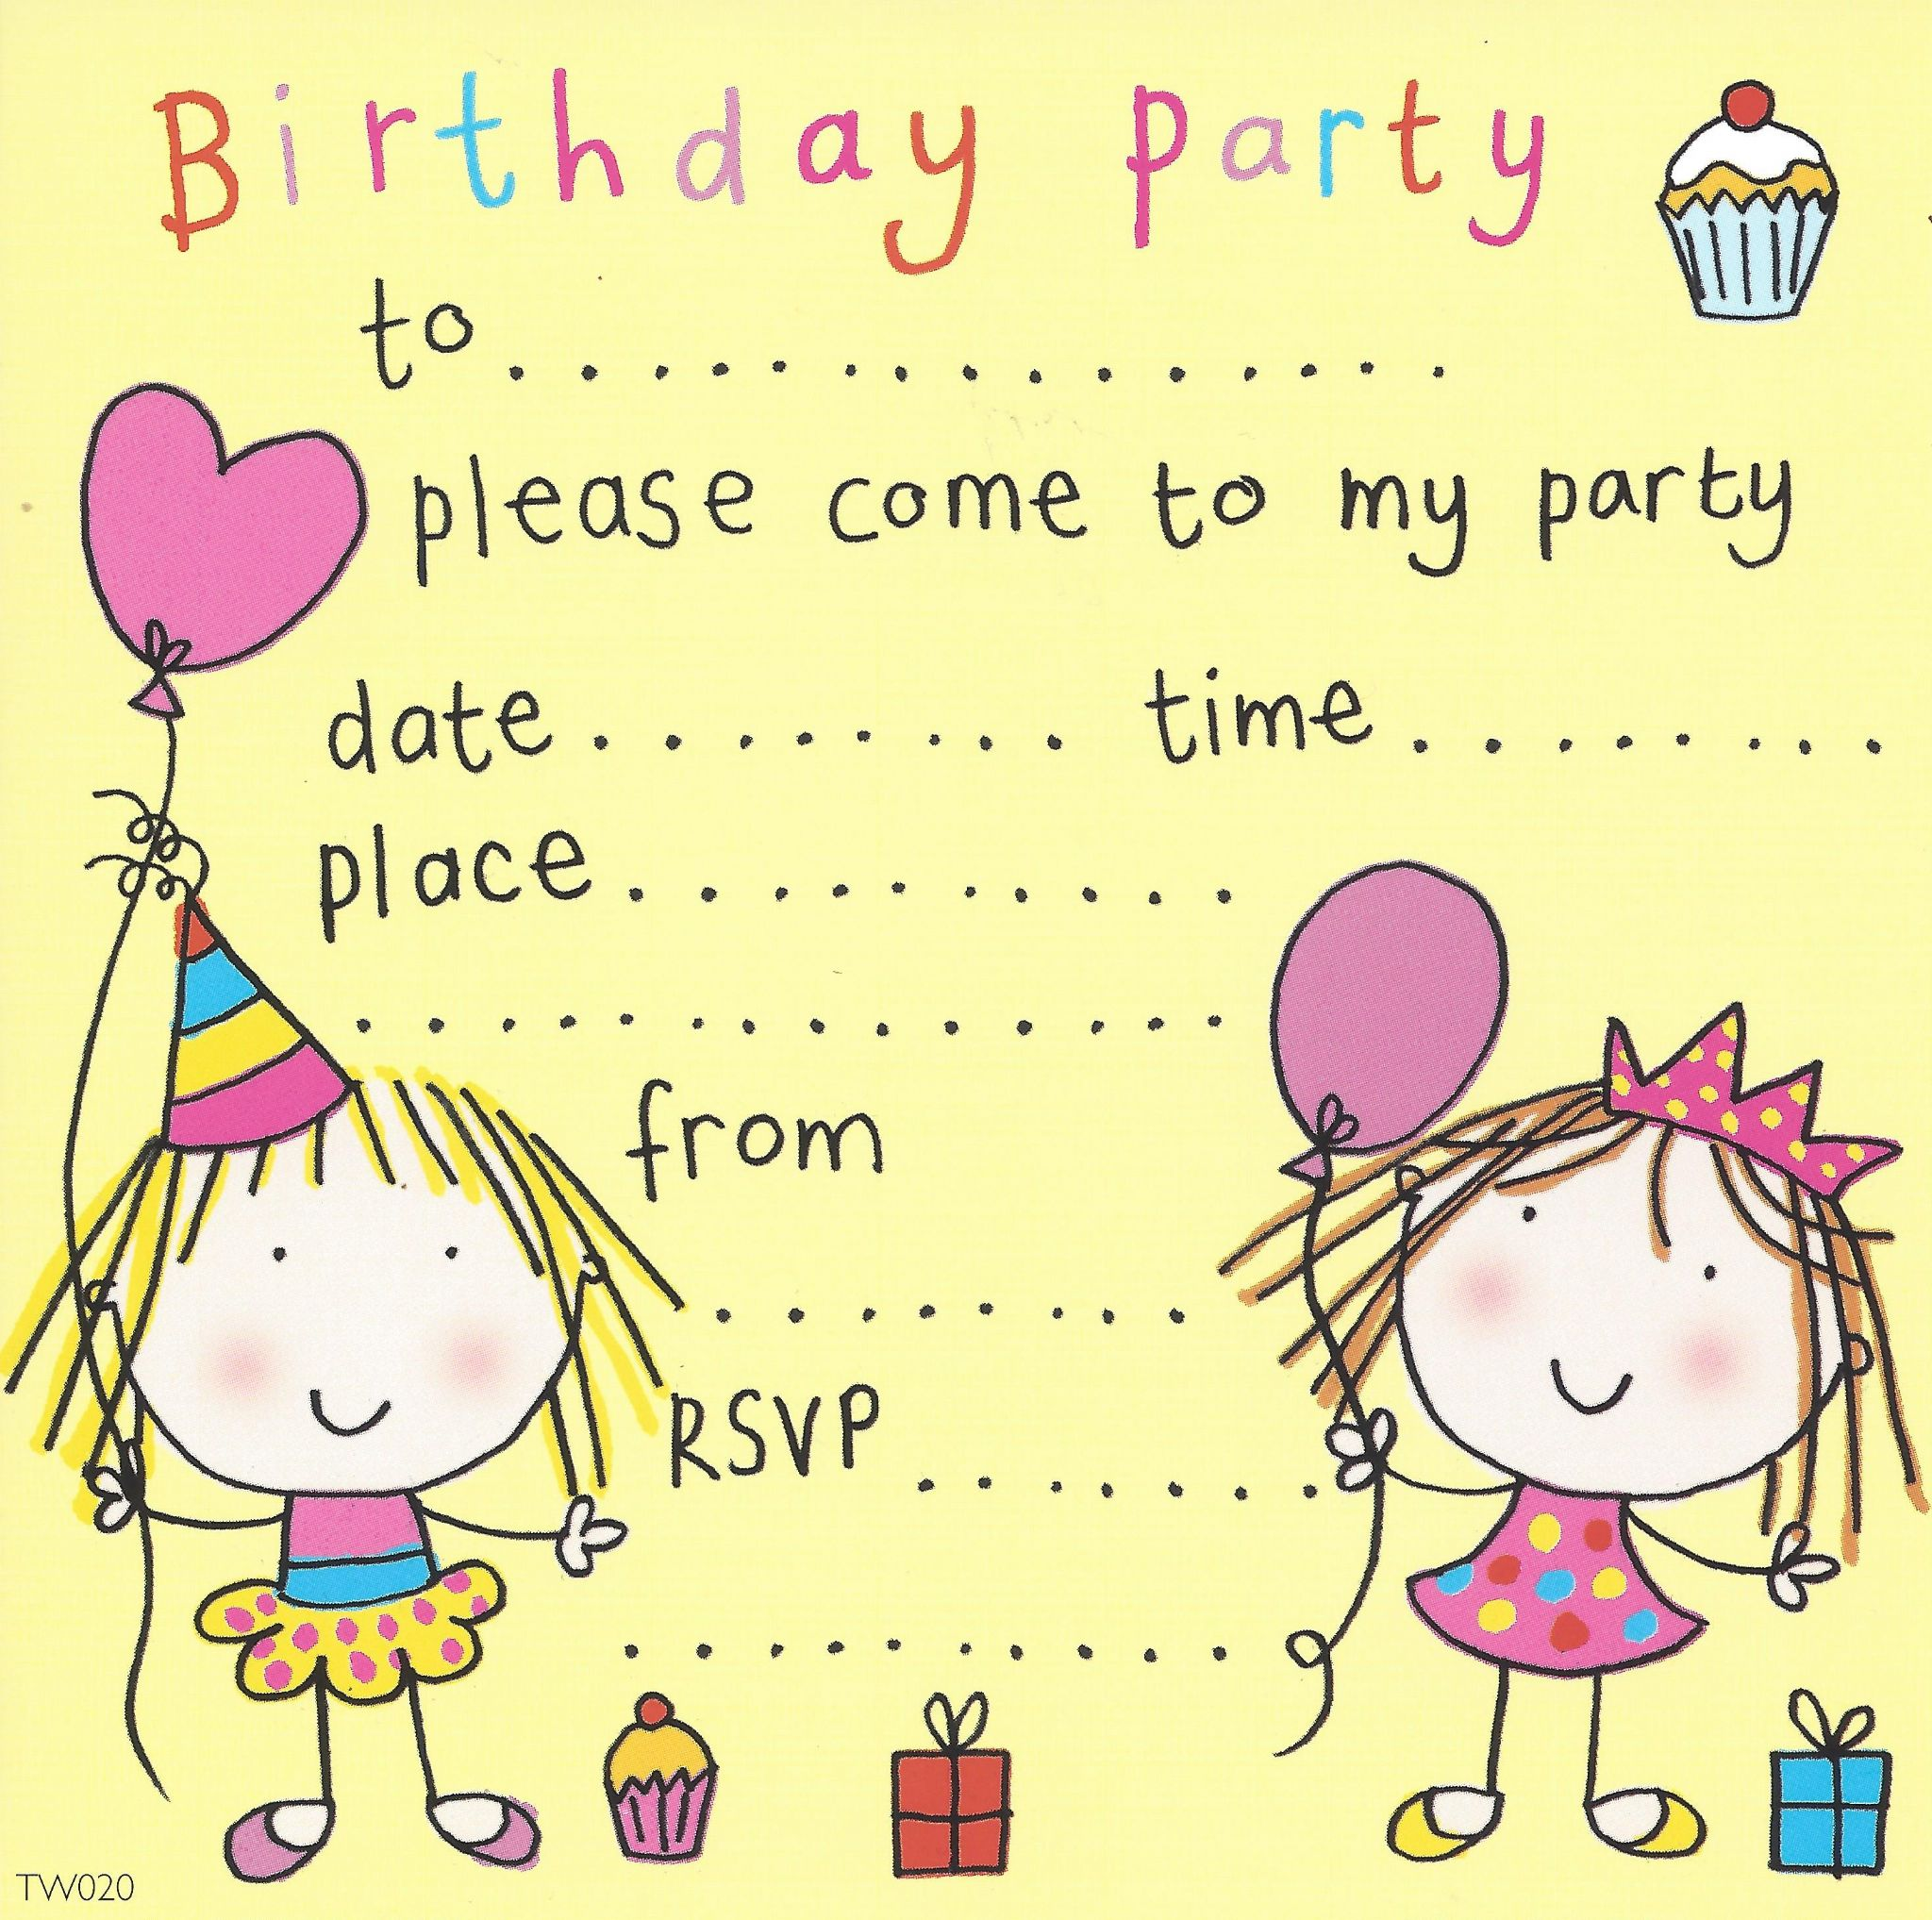 Party invitations birthday party invitations kids party party invitations birthday party invitations kids party invitations childrens party invites stopboris Image collections